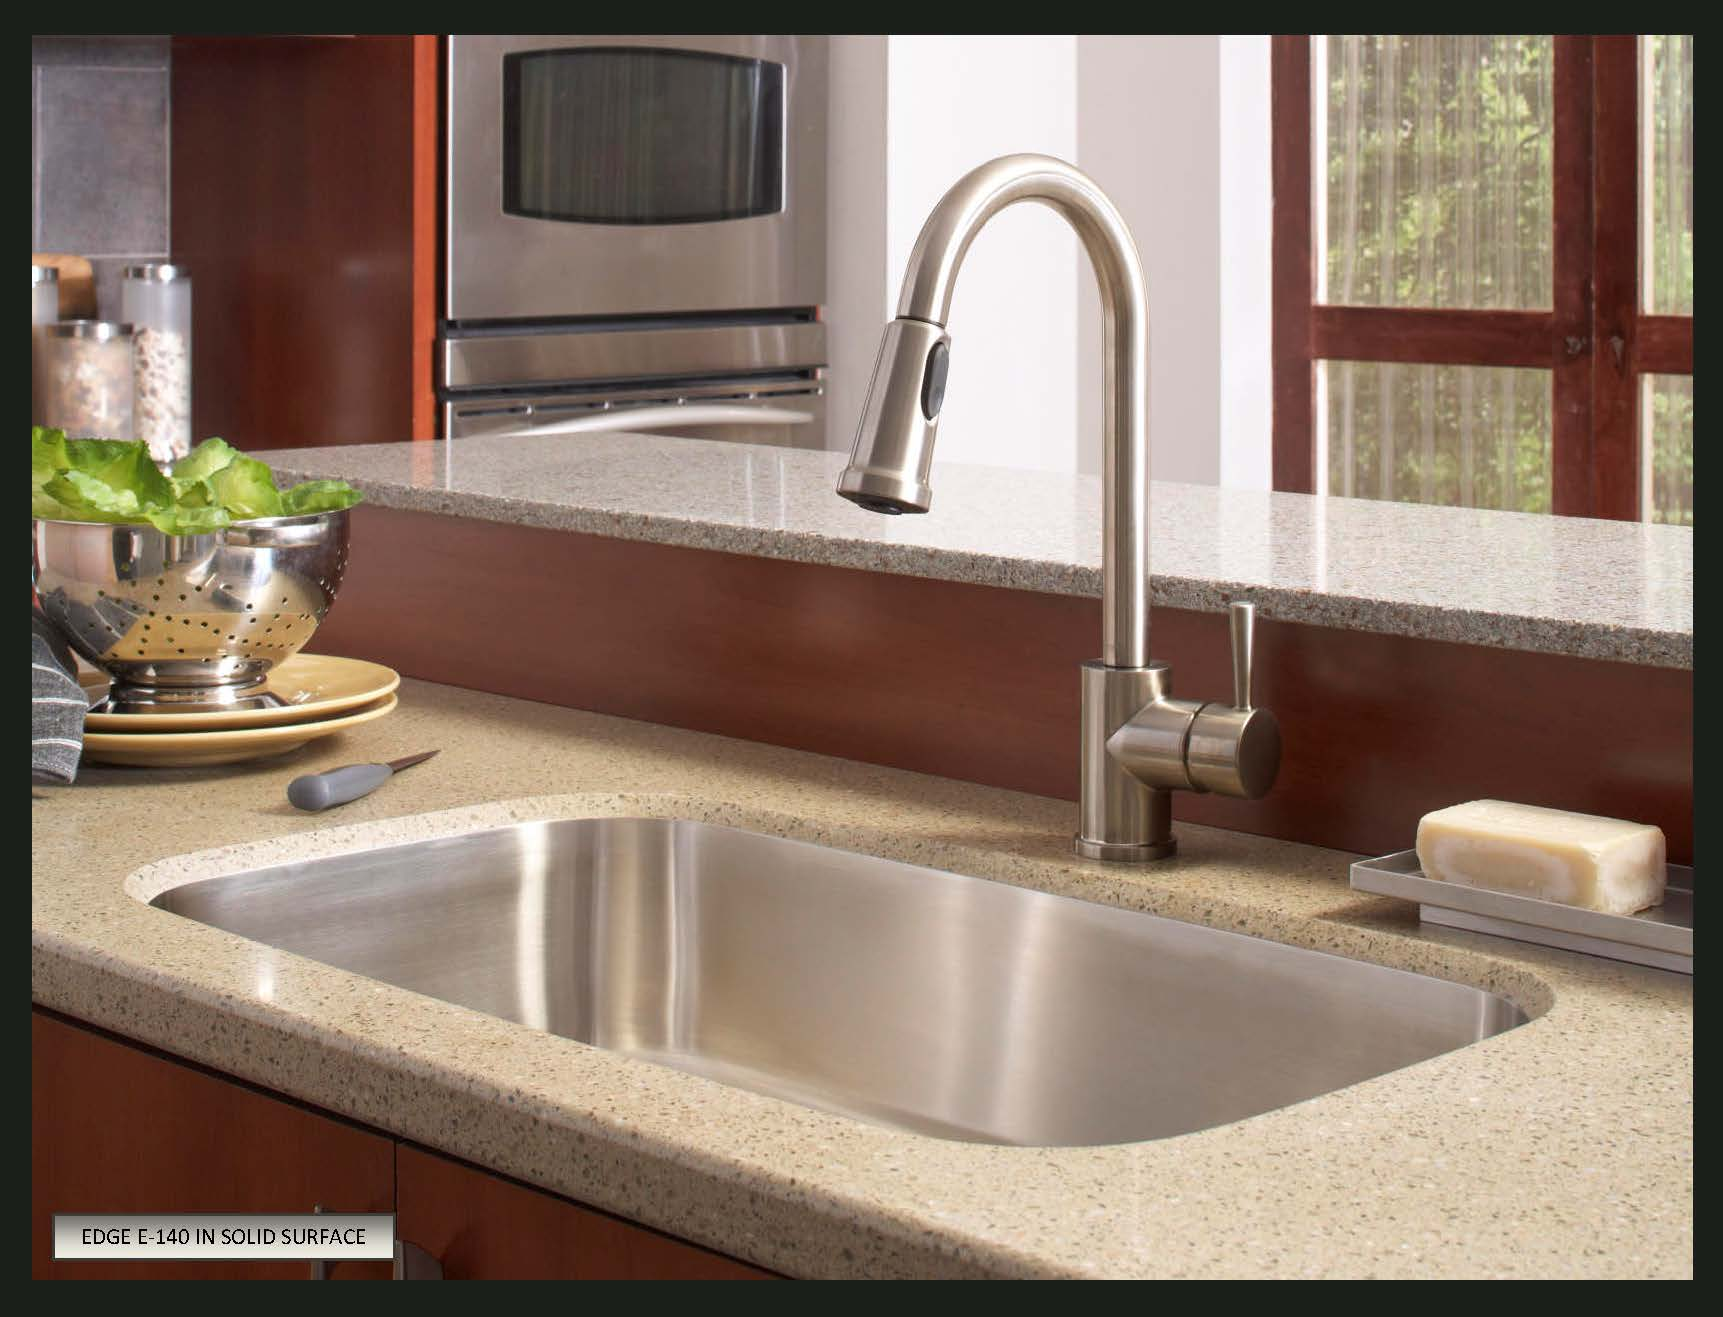 Granite Kitchen Sinks Pros And Cons How To Choose A Sink For Solid Surface Countertops Solidsurface